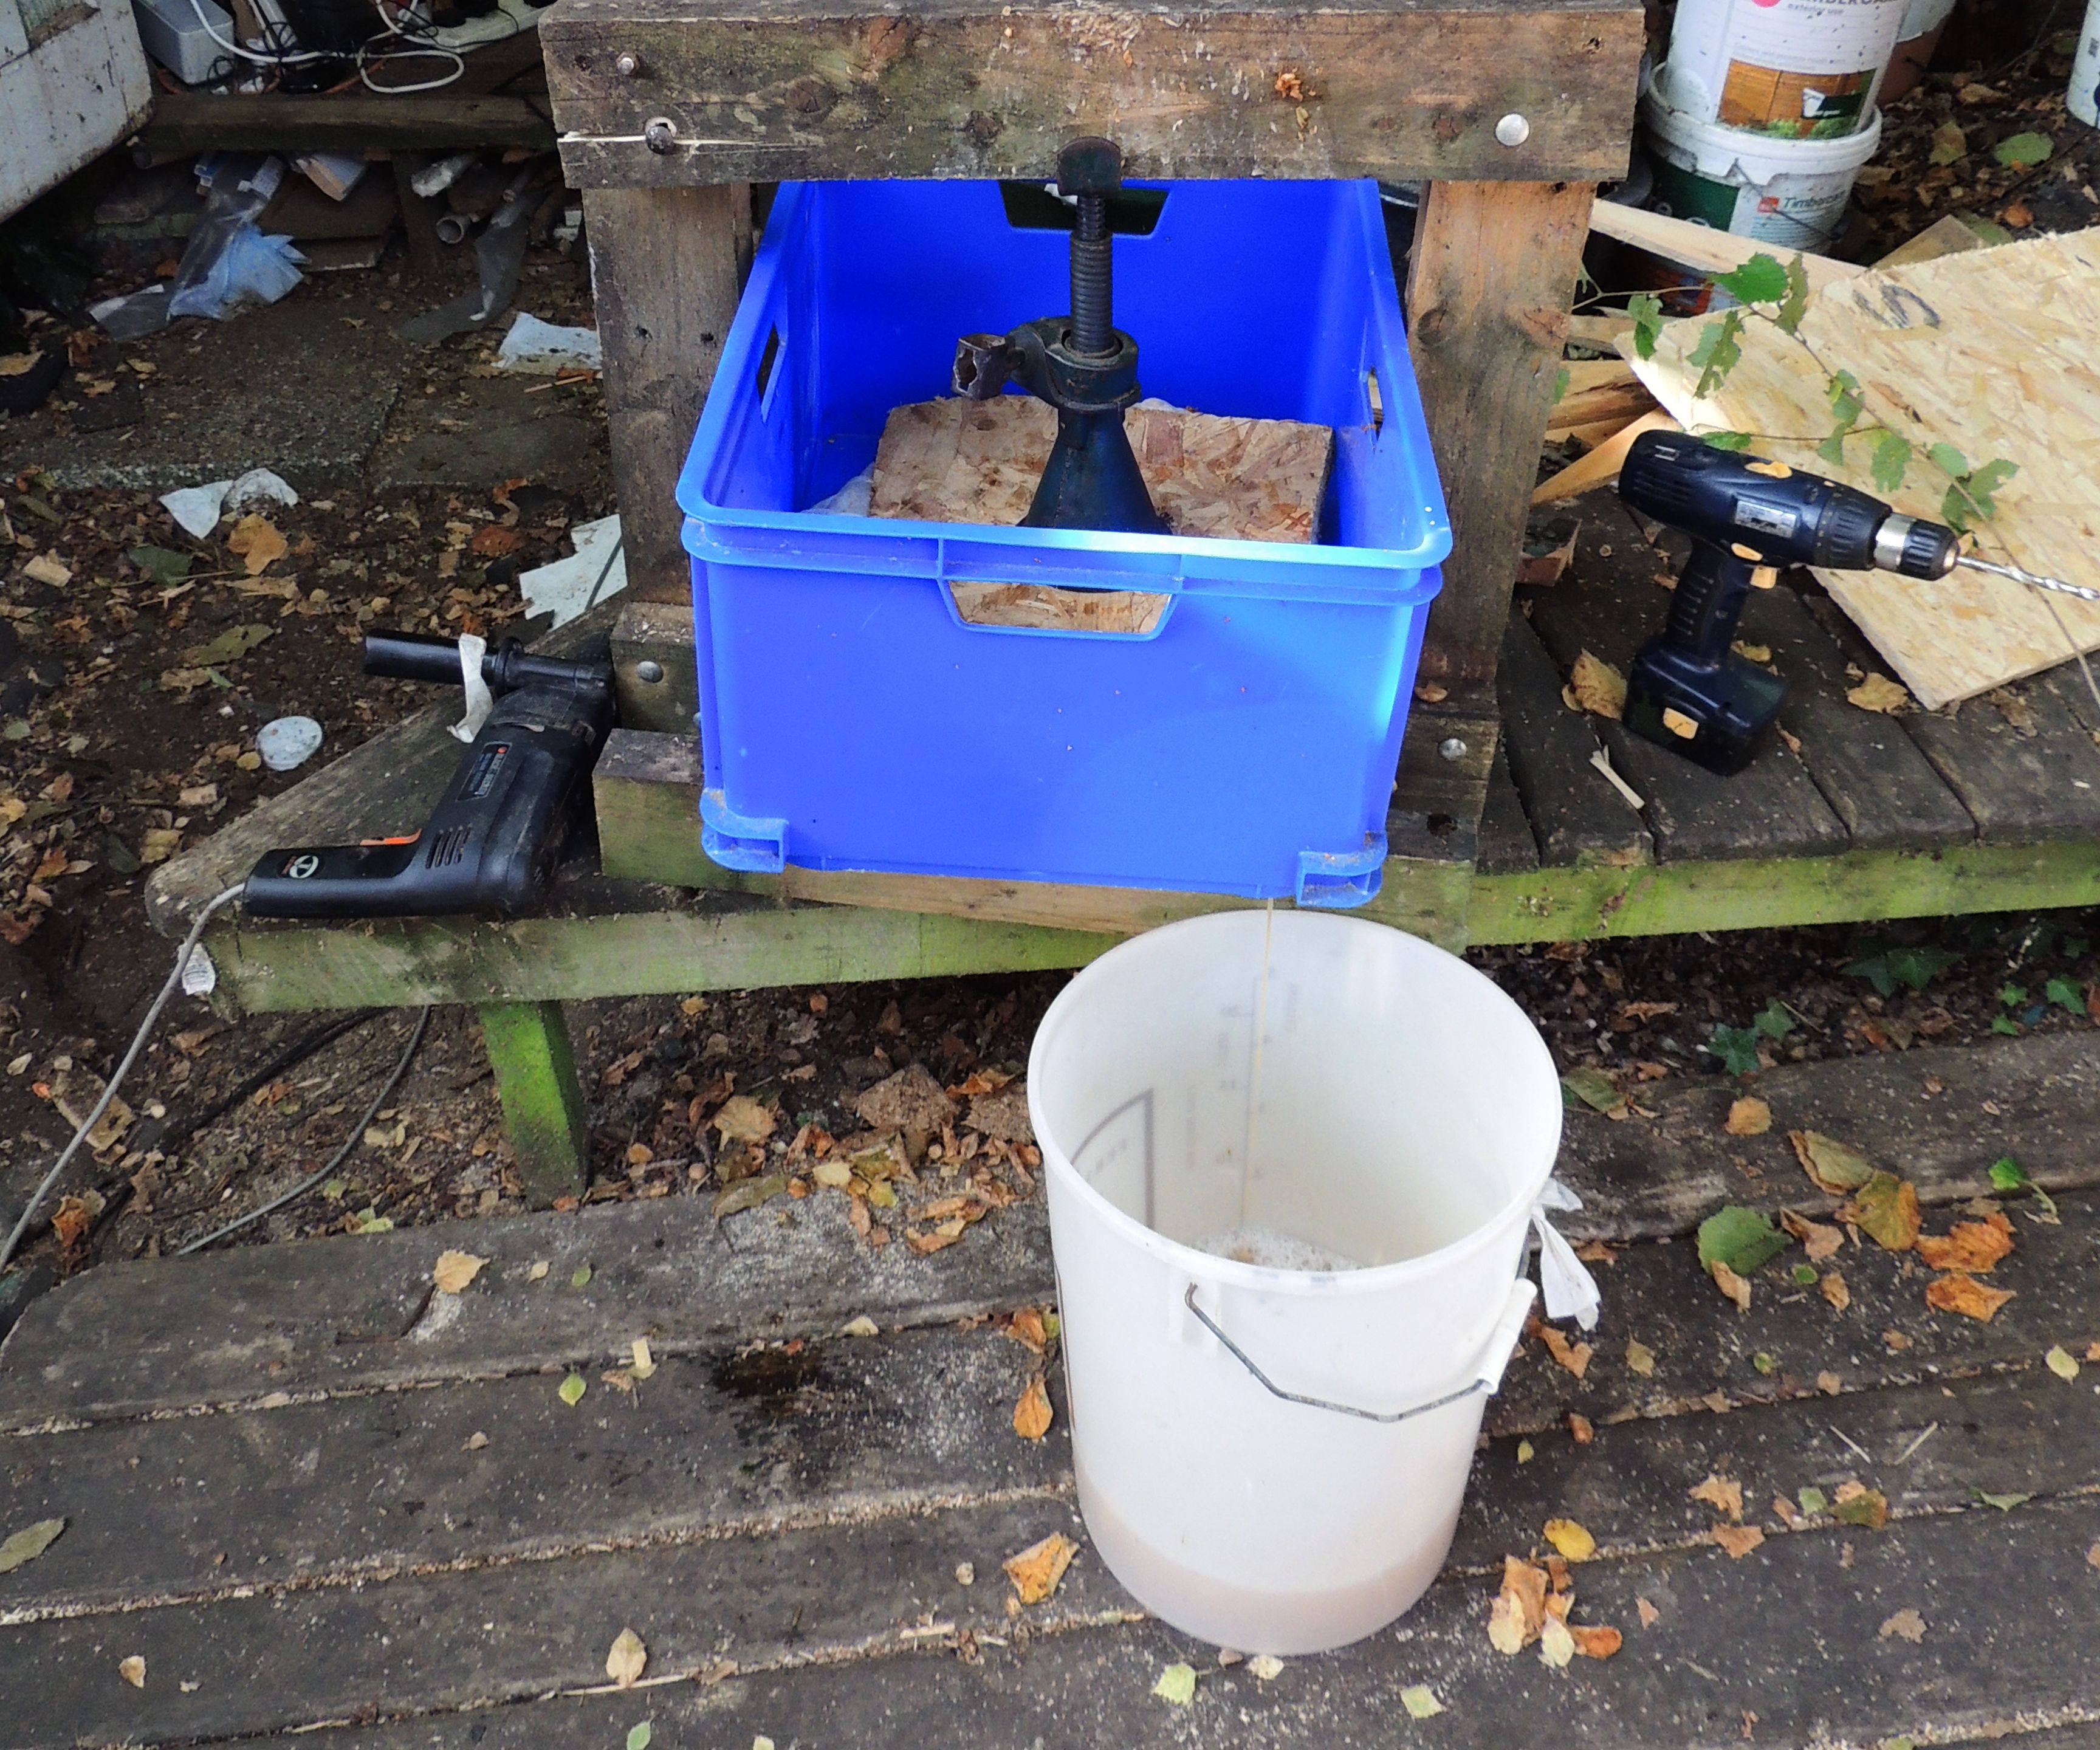 How to make a cider press with a car jack